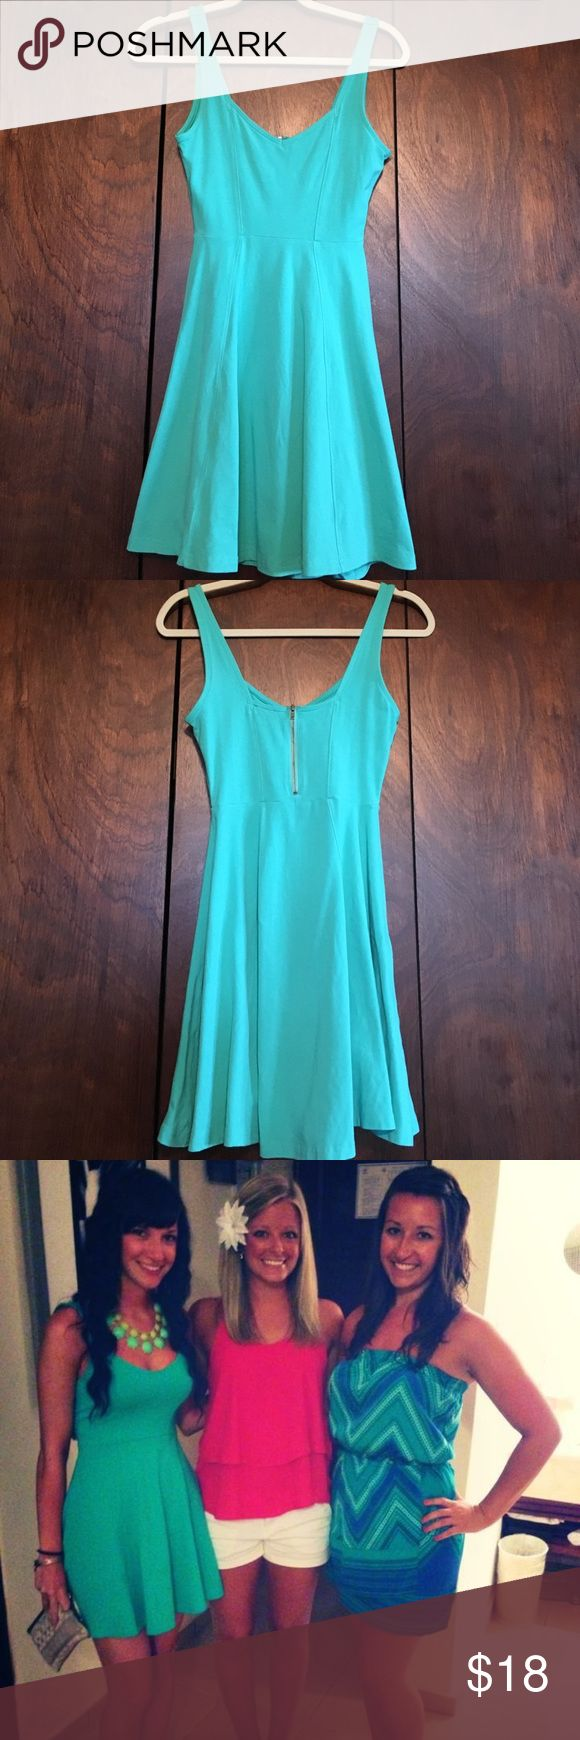 Turquoise / Aqua Color Dress Express Dress; Size: X Small. In good condition Express Dresses Mini